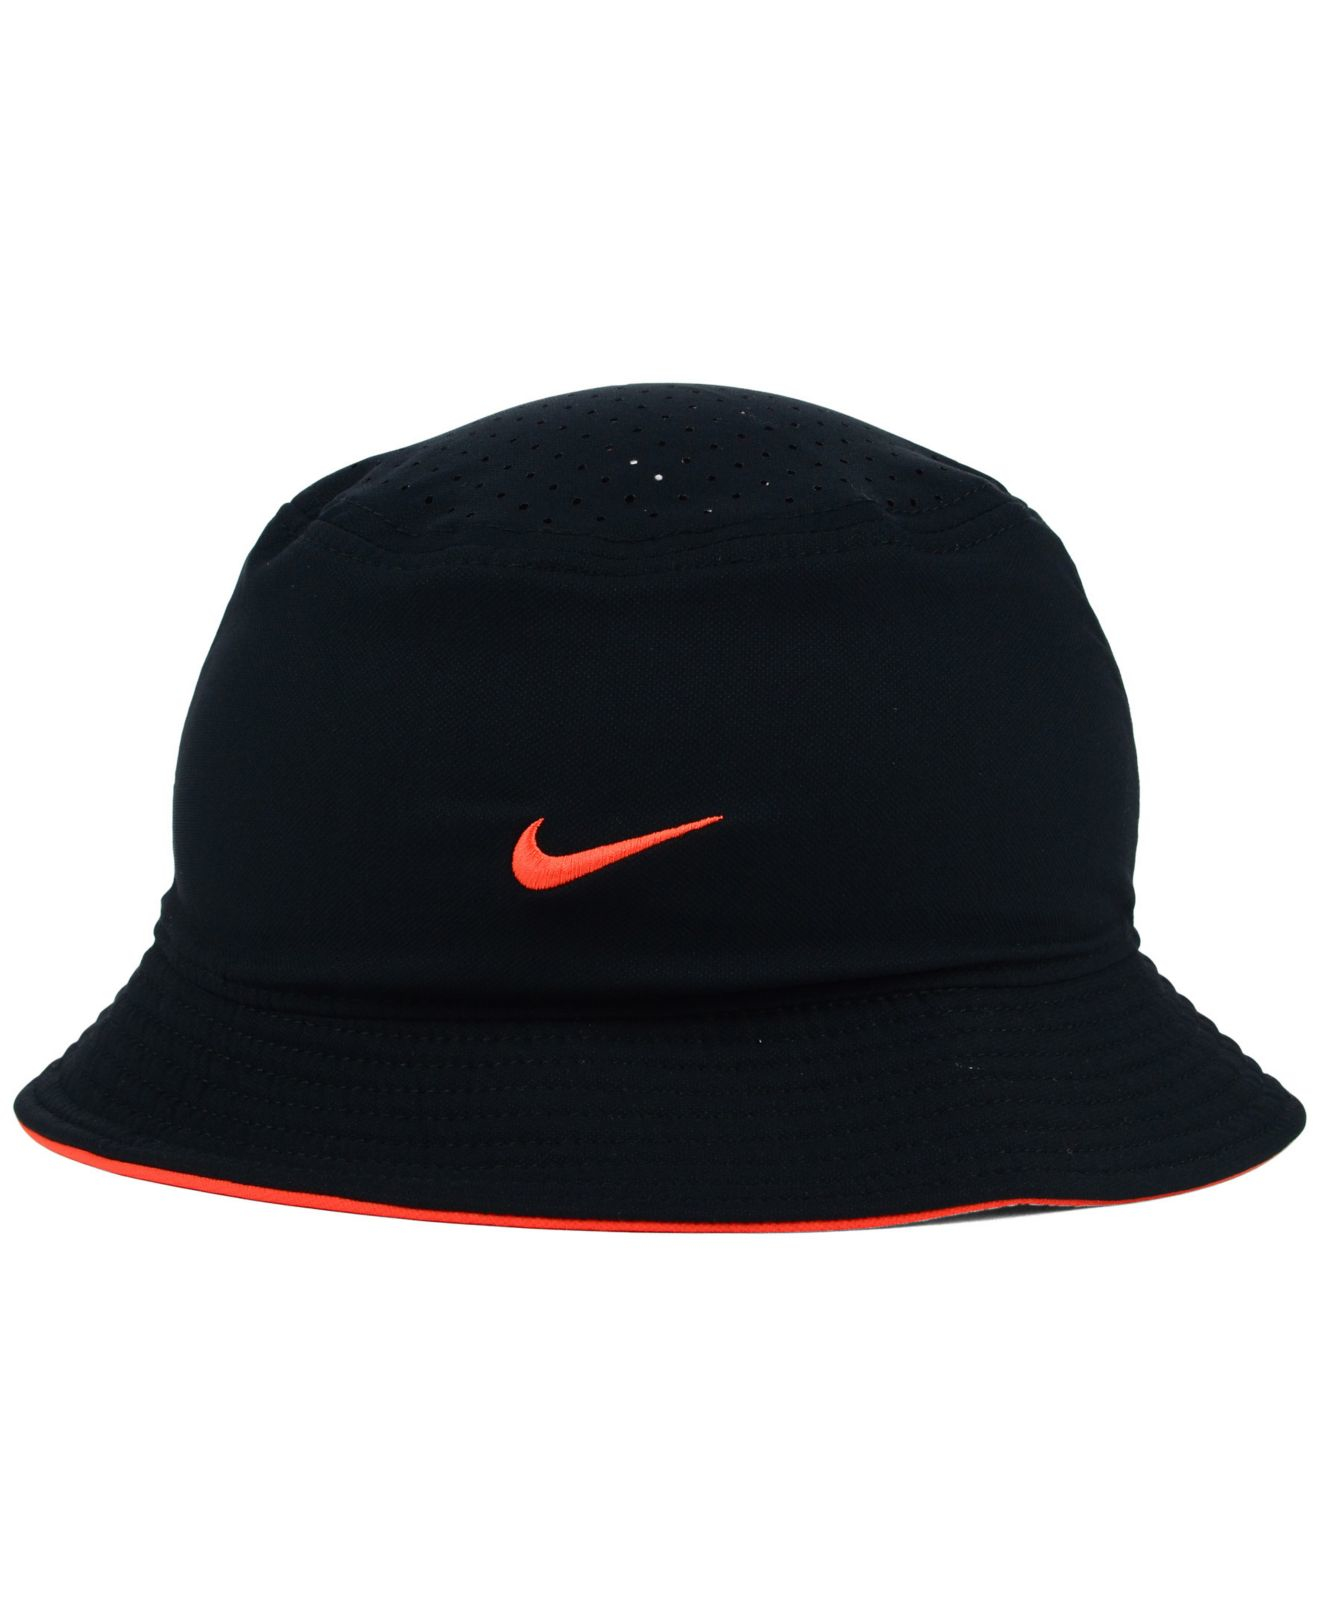 6668be68560e8 switzerland lyst nike san francisco giants vapor dri fit bucket hat in black  59a5a 20c60